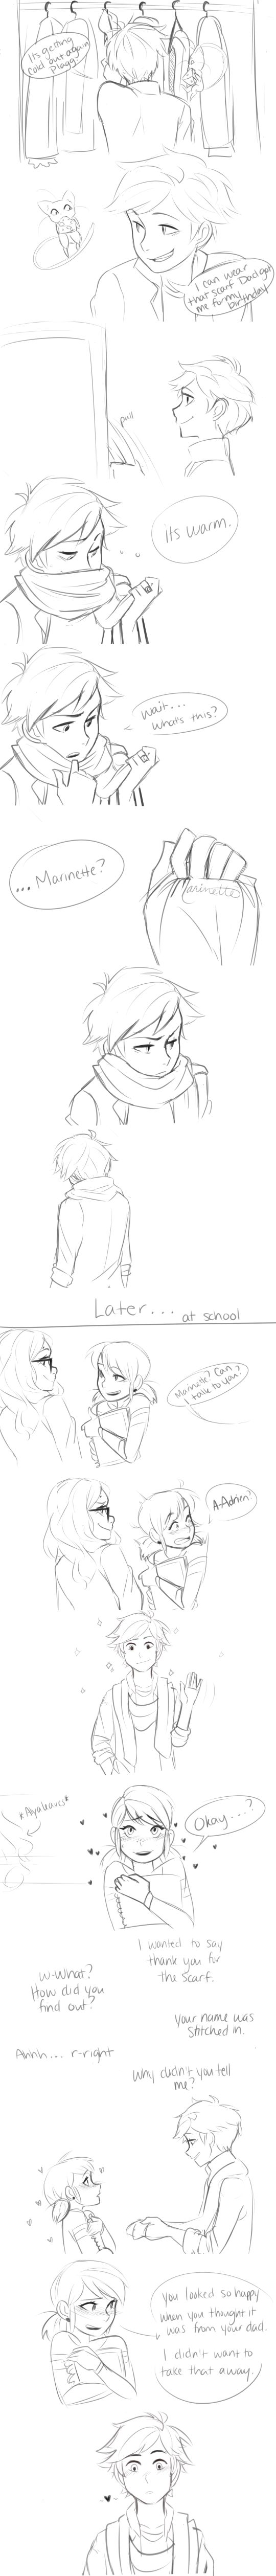 Reason #13 they should be together: they are so perfect for each other! ~Comic by Taylordraws on Tumblr